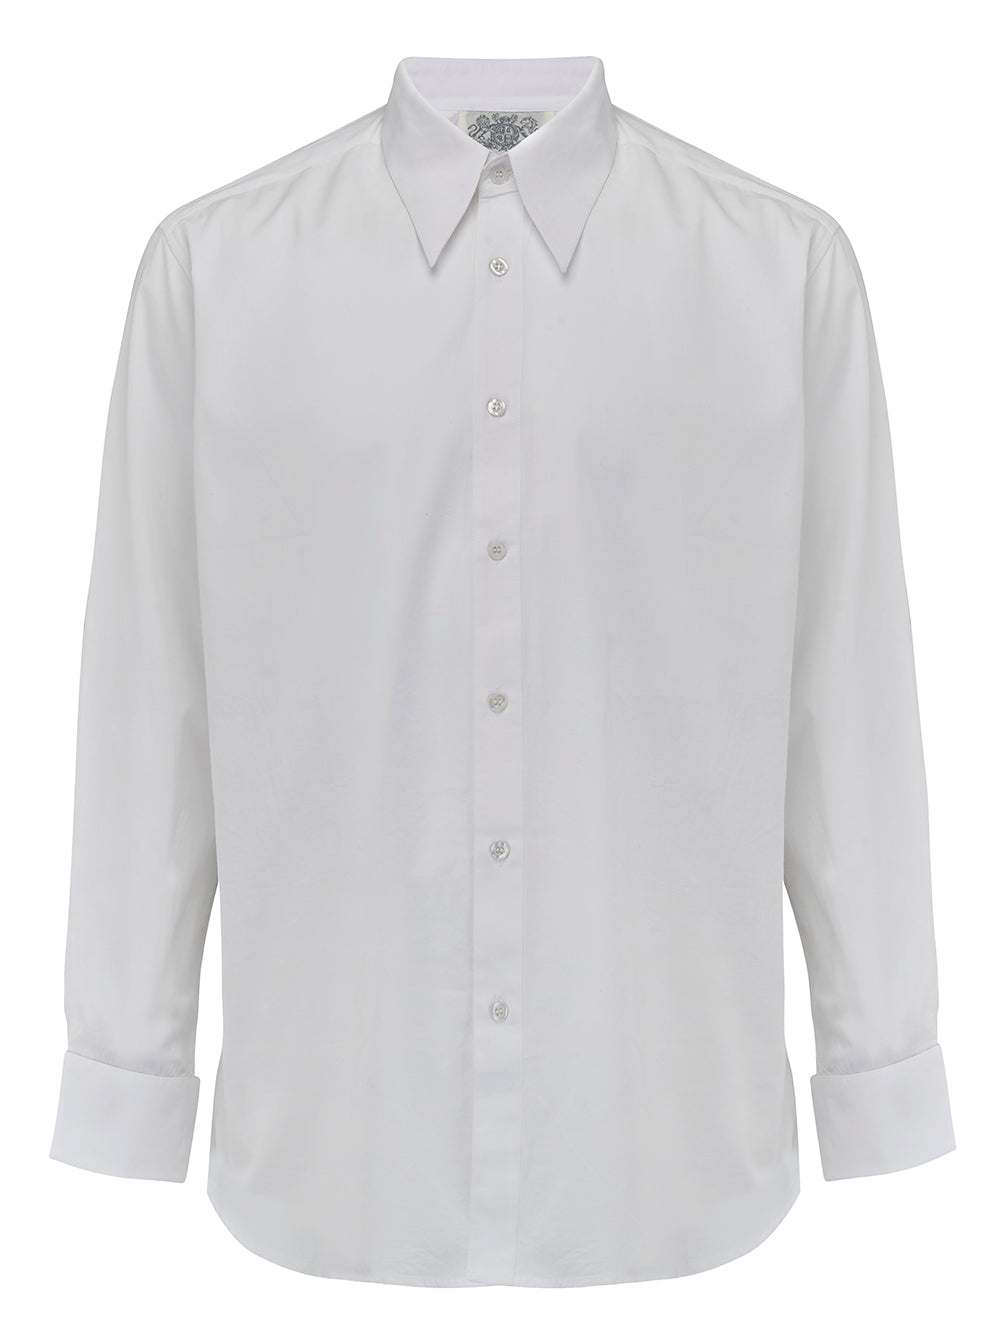 Mens 1940's Vintage Inspired Spear-point Collar Shirt by The Seamstress of Bloomsbury